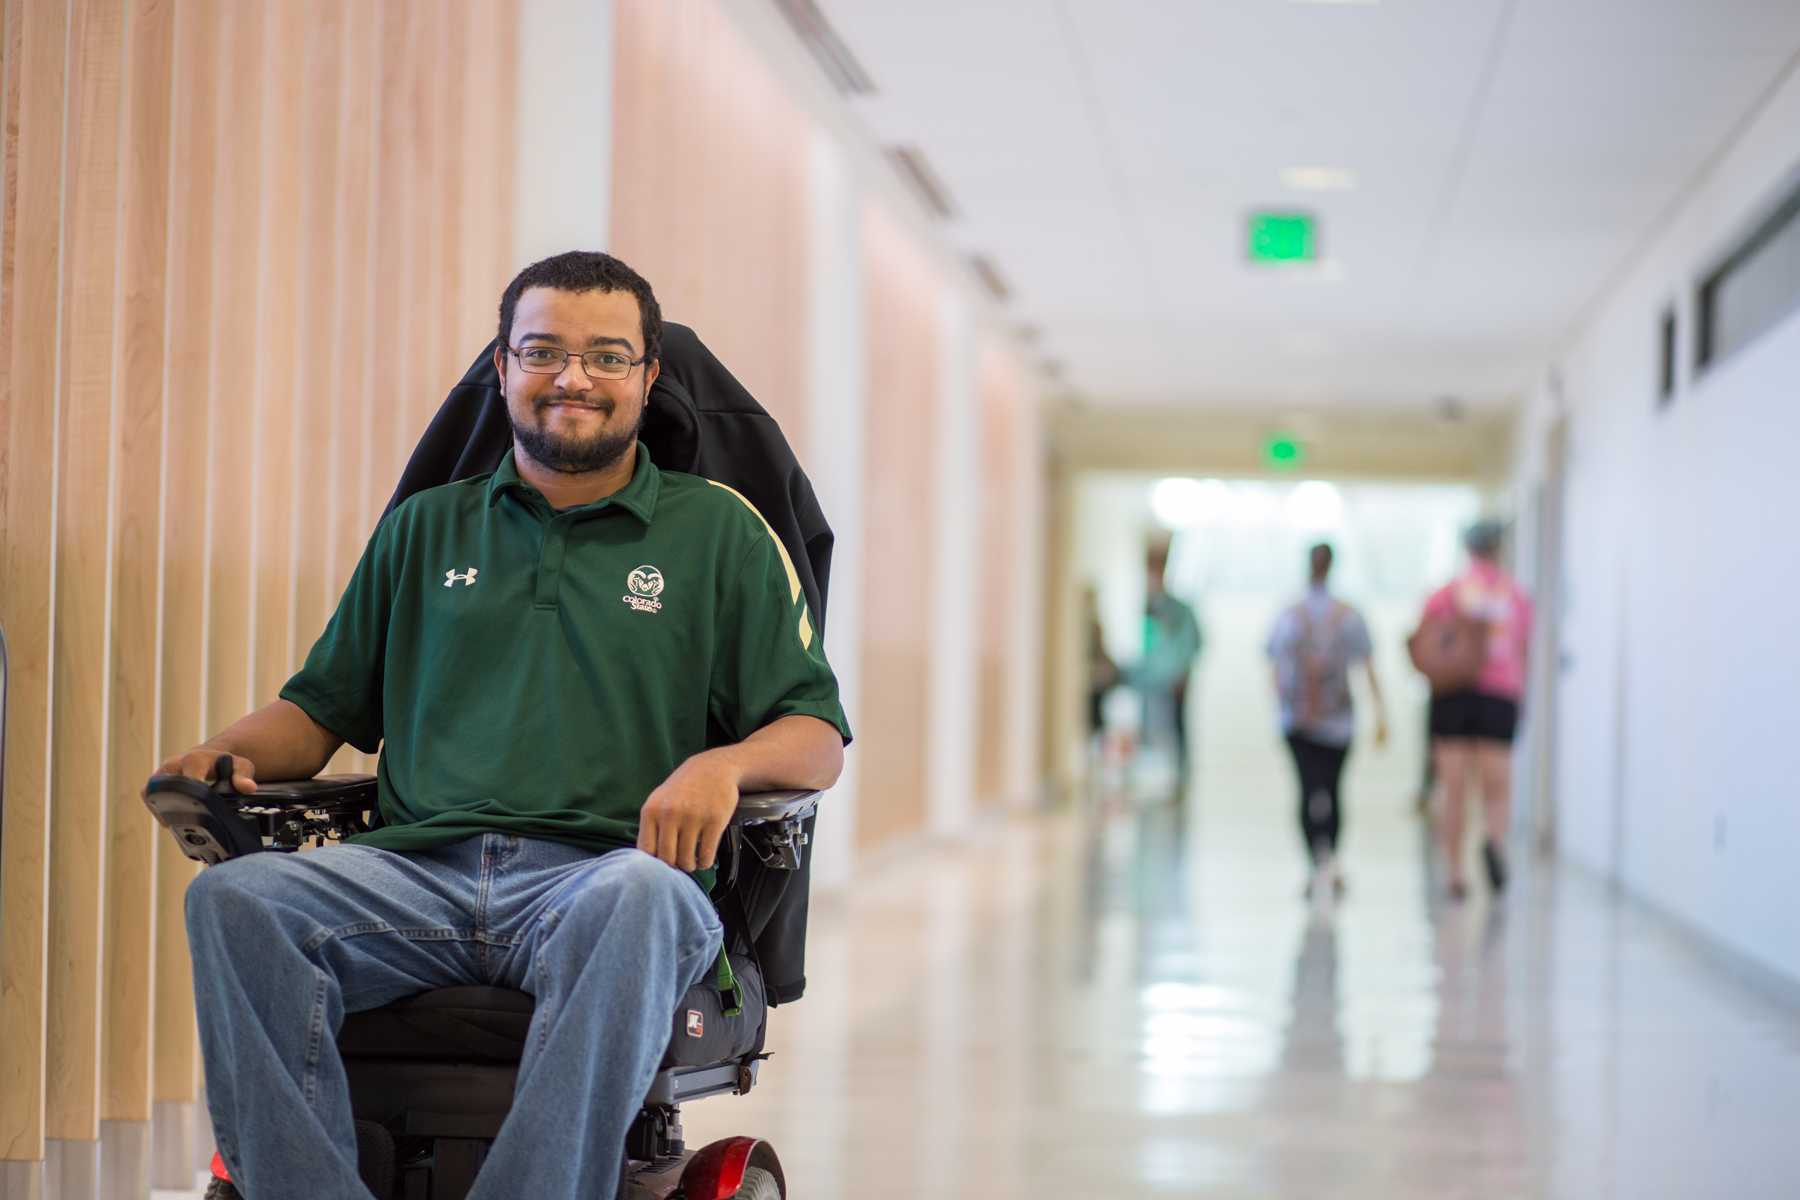 Micheal Mills (29) is a Graduate Student studying Student Affairs and makes use of wheelchair ramps daily. Photo Credit: Ryan Arb